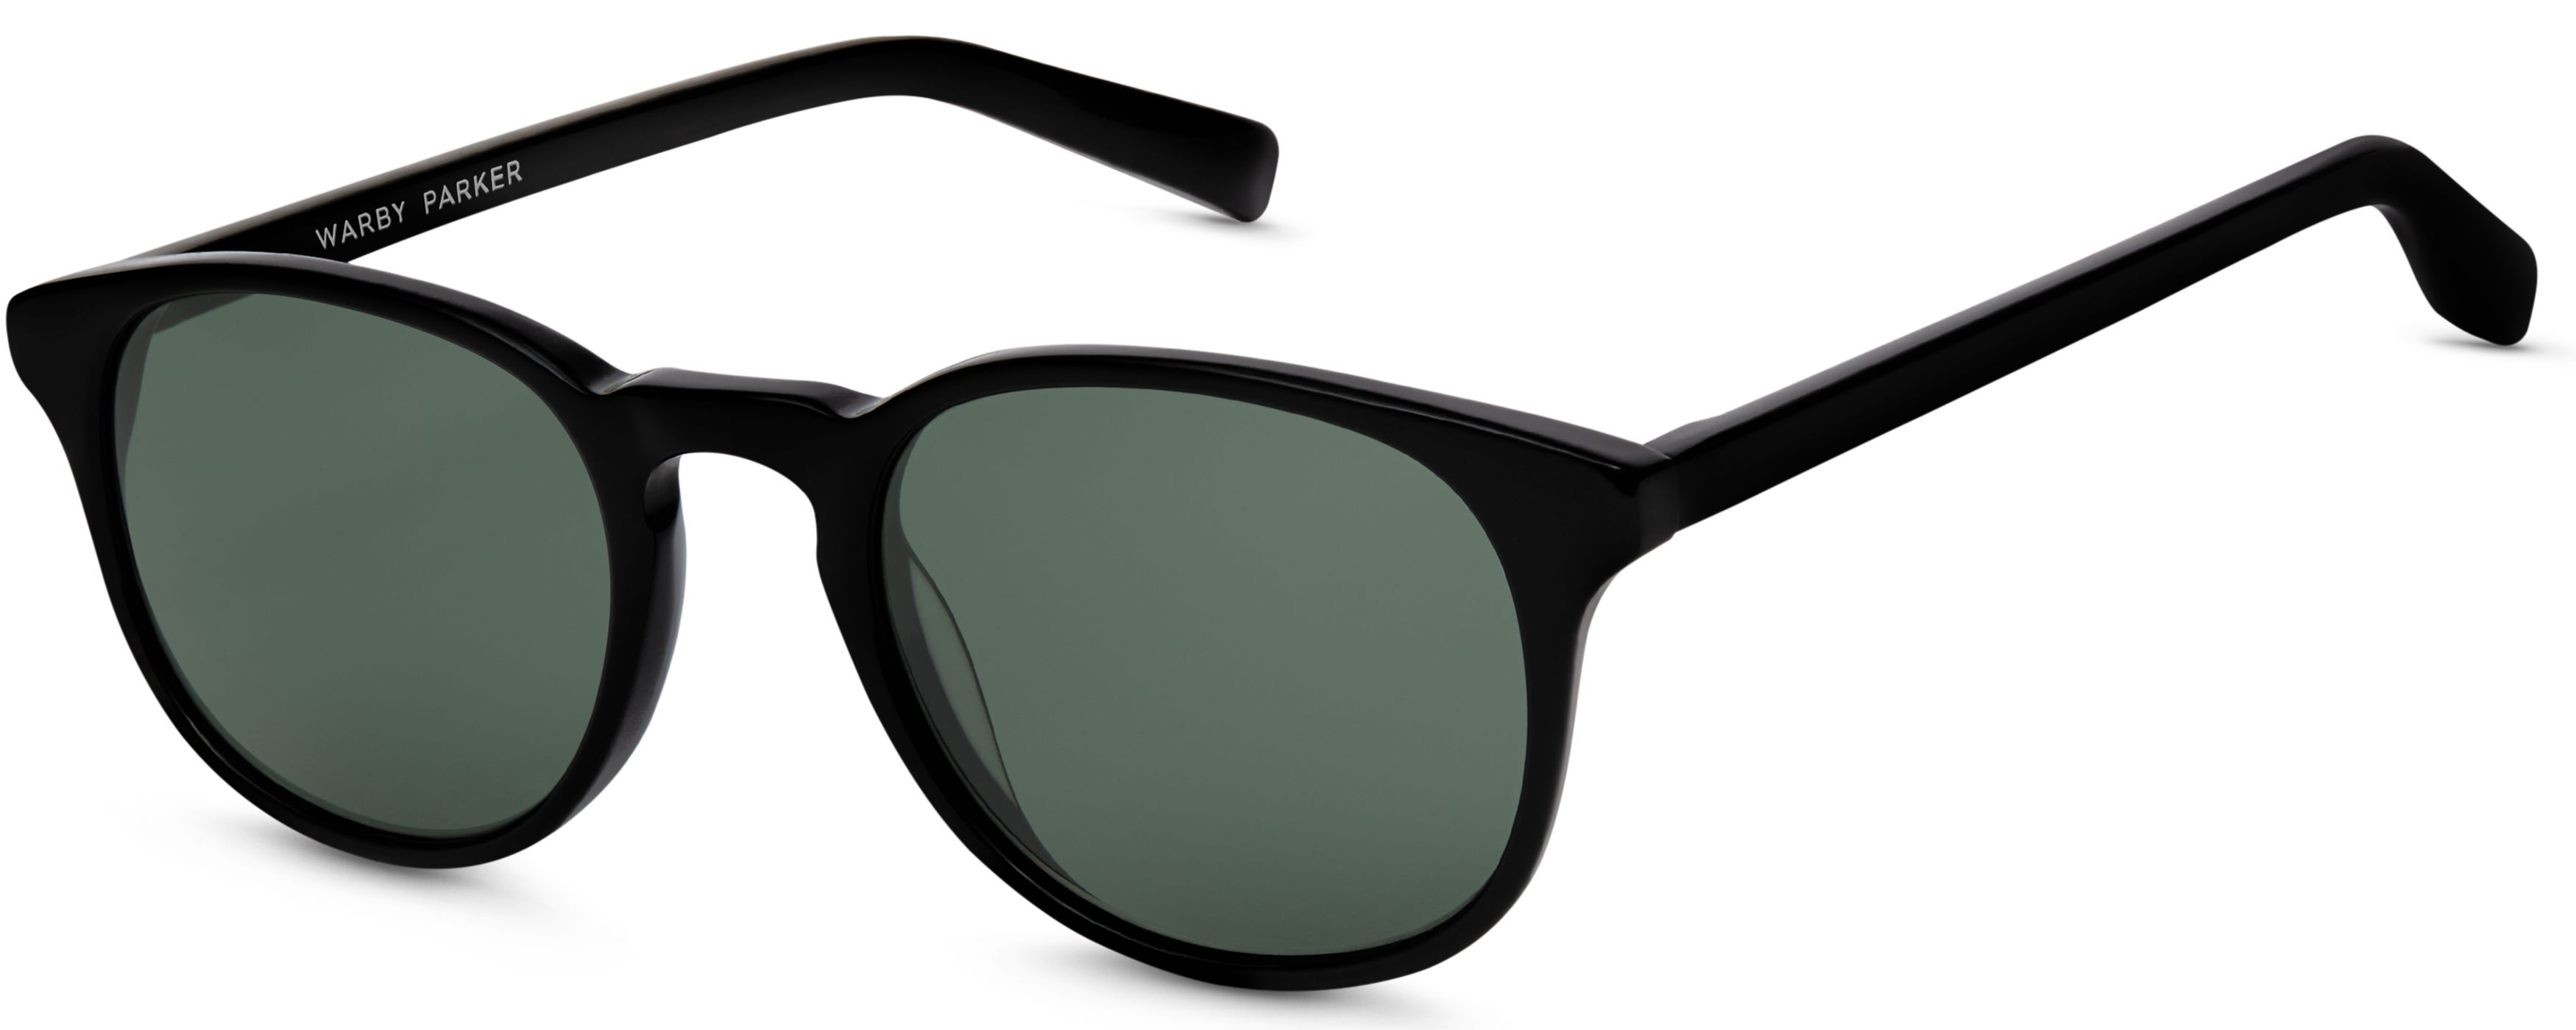 349d4c091c Downing Sunglasses in Jet Black for Men